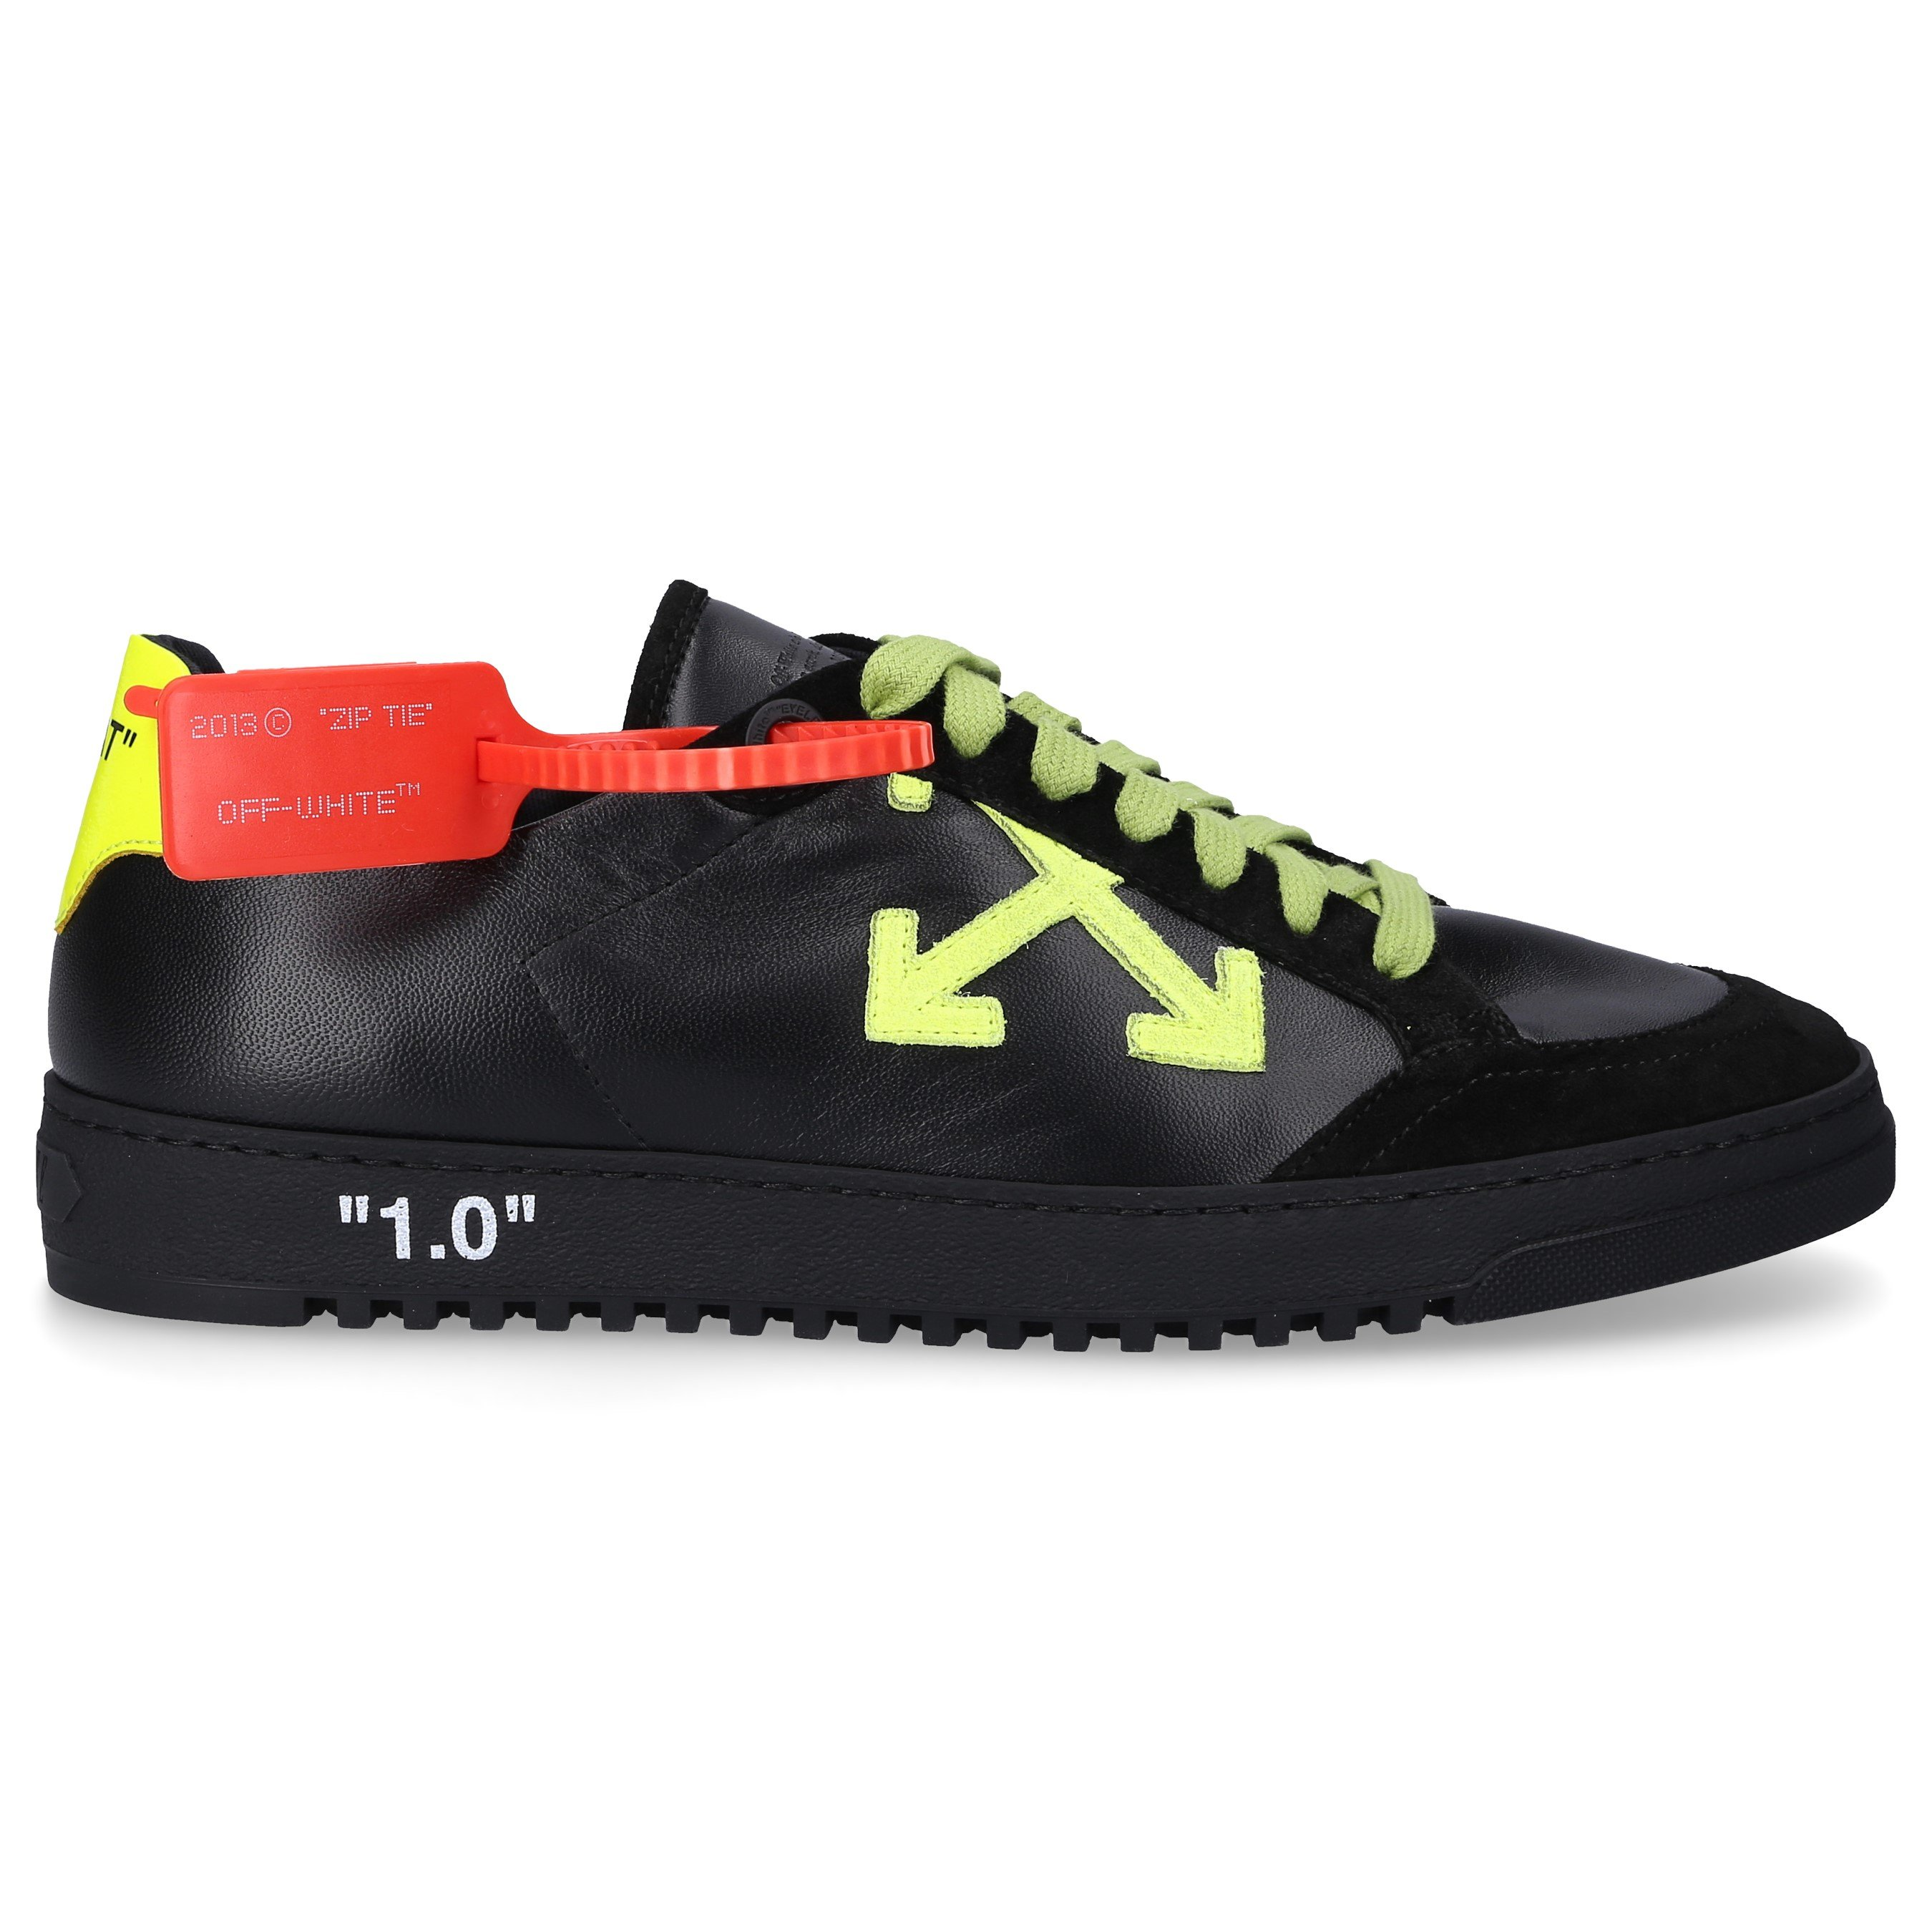 Off-White Low-Top Sneakers 2.0 Calfskin Patch Black-Combo